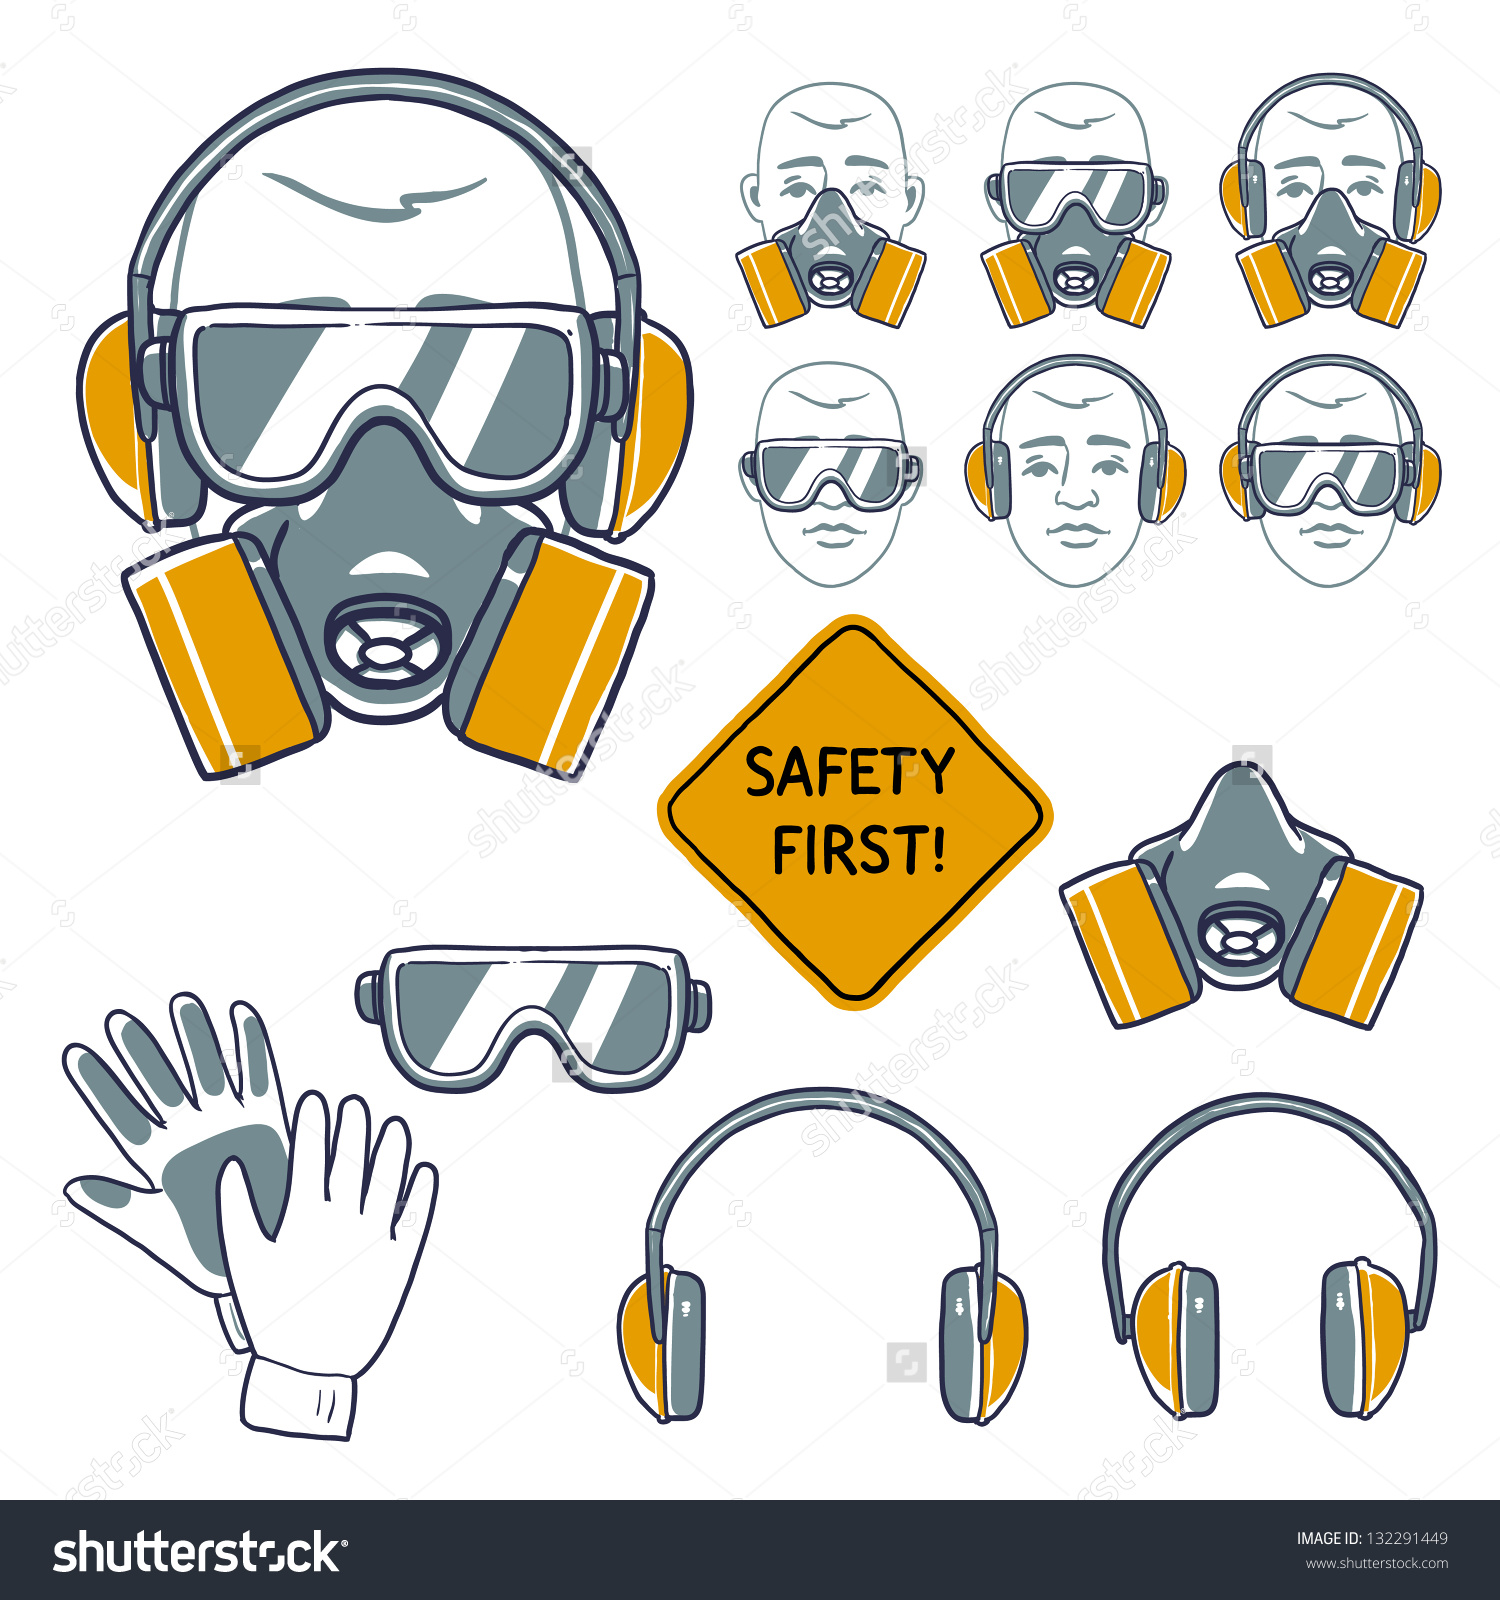 Hand Drawn Safety Signs Eye Protection Stock Vector 132291449.